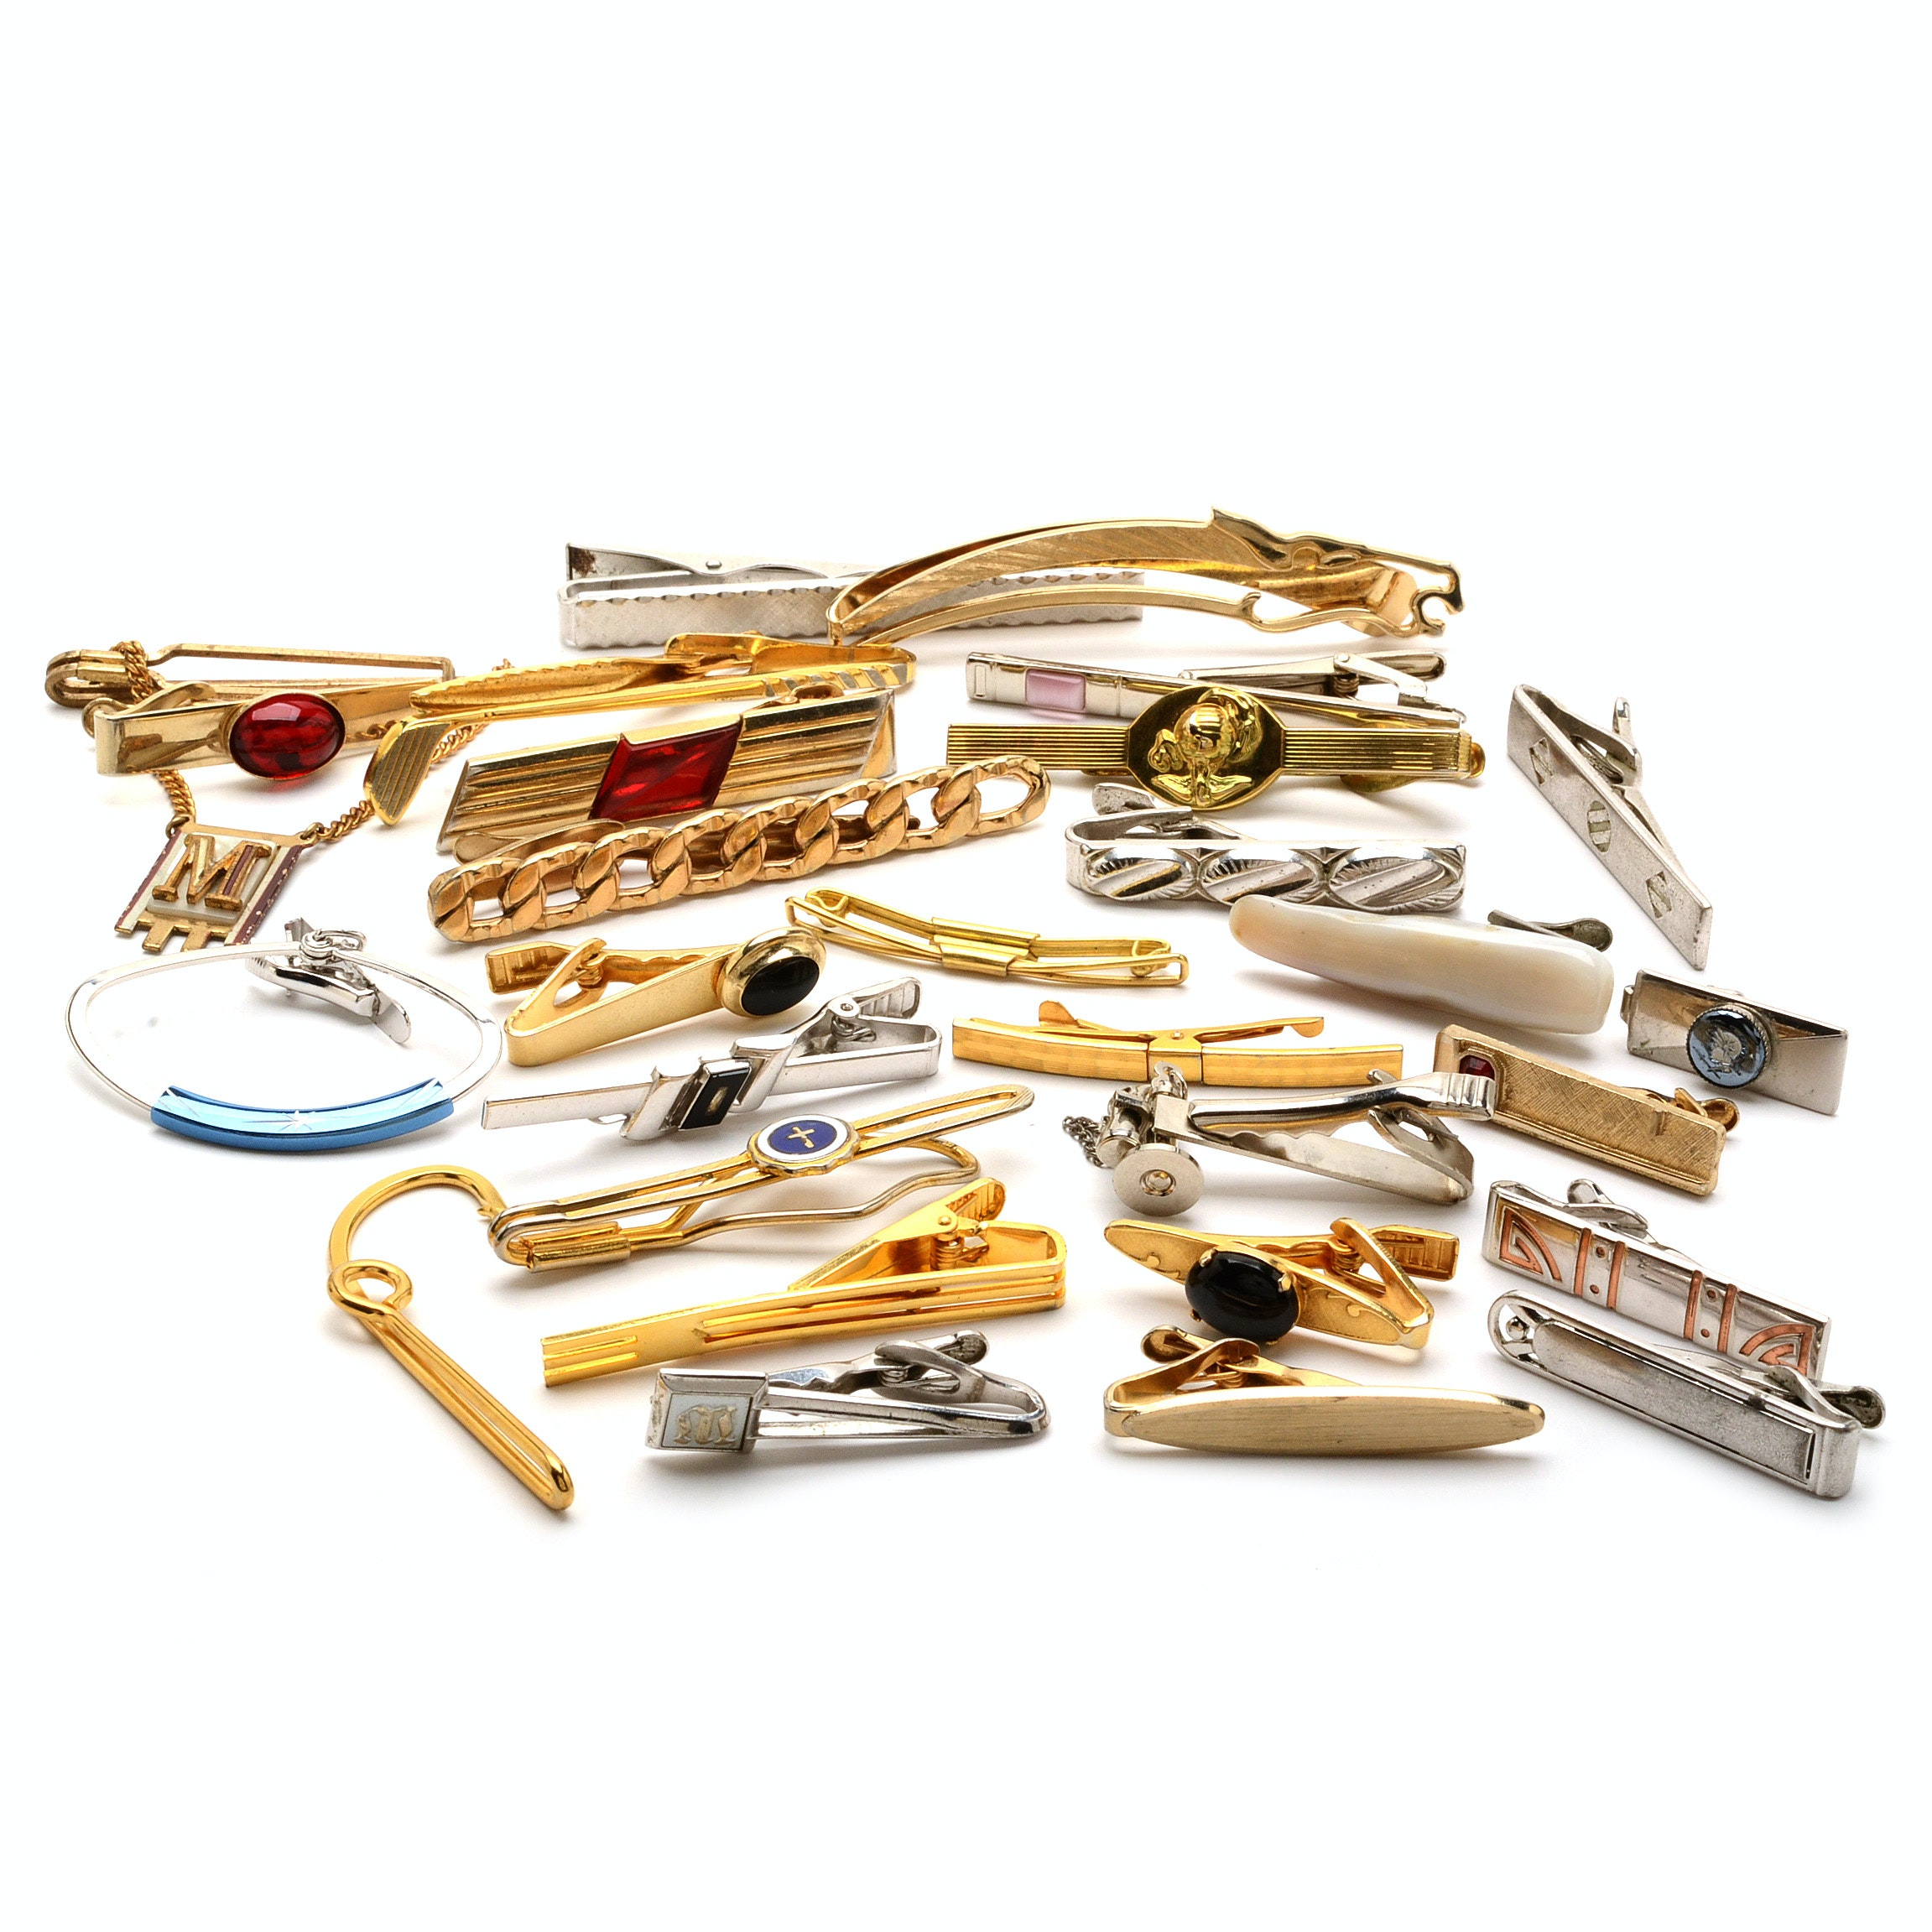 Assortment of Vintage Tie Clips and Tie Bars